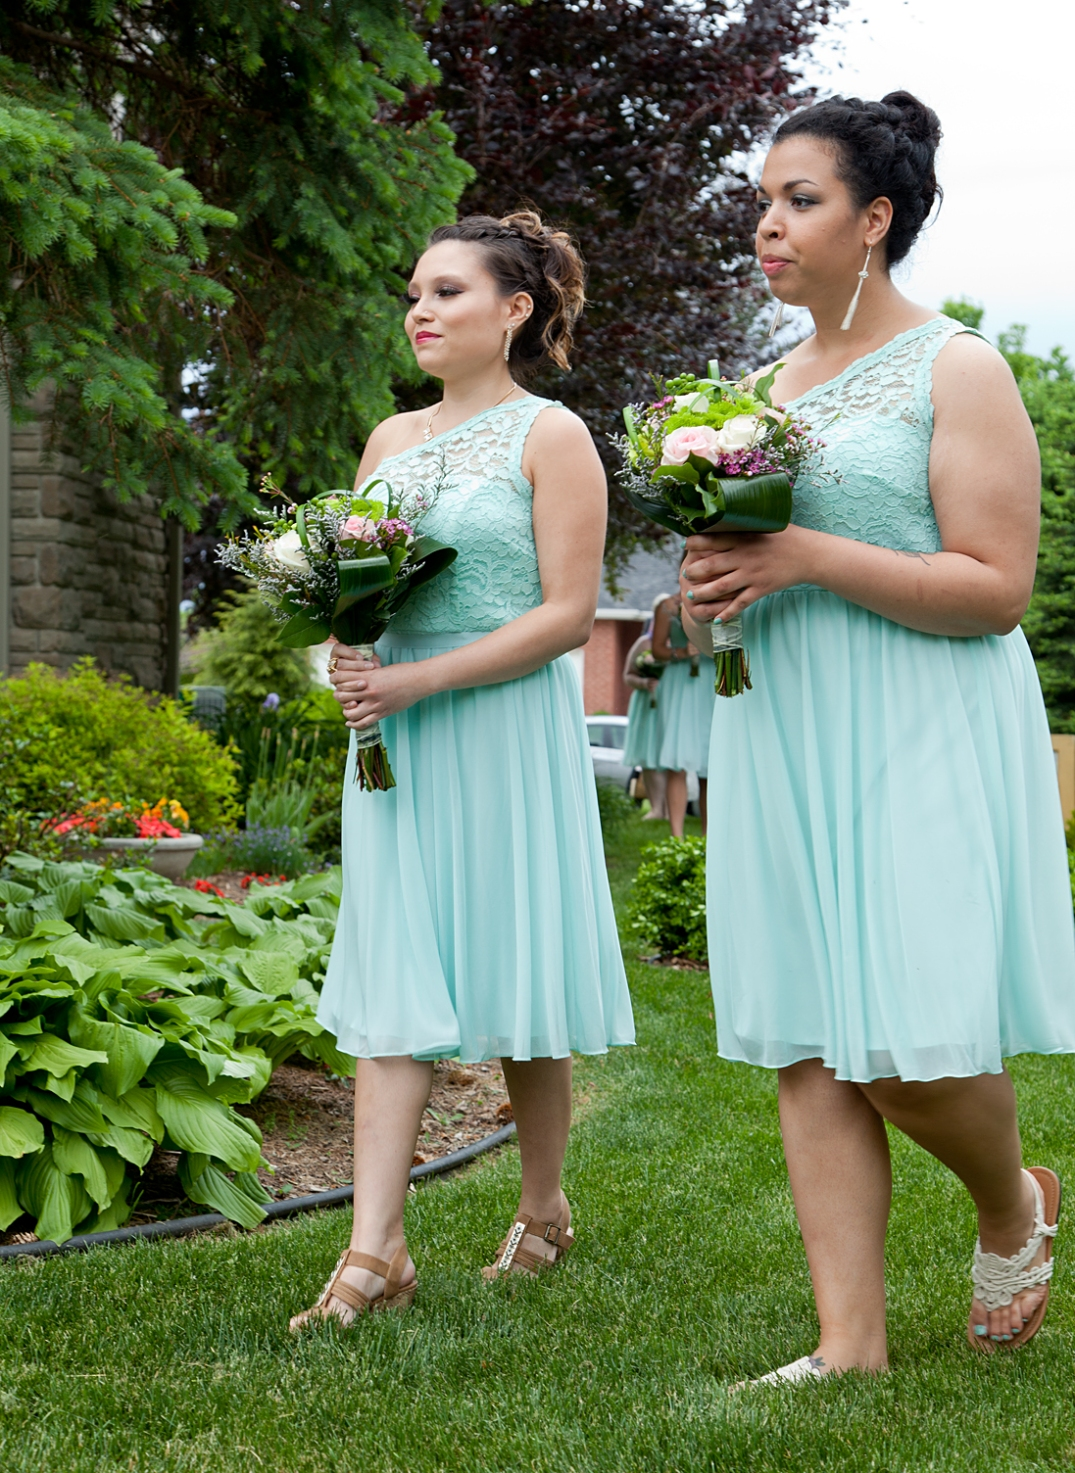 Katelyn and Ashley - Bridesmaids